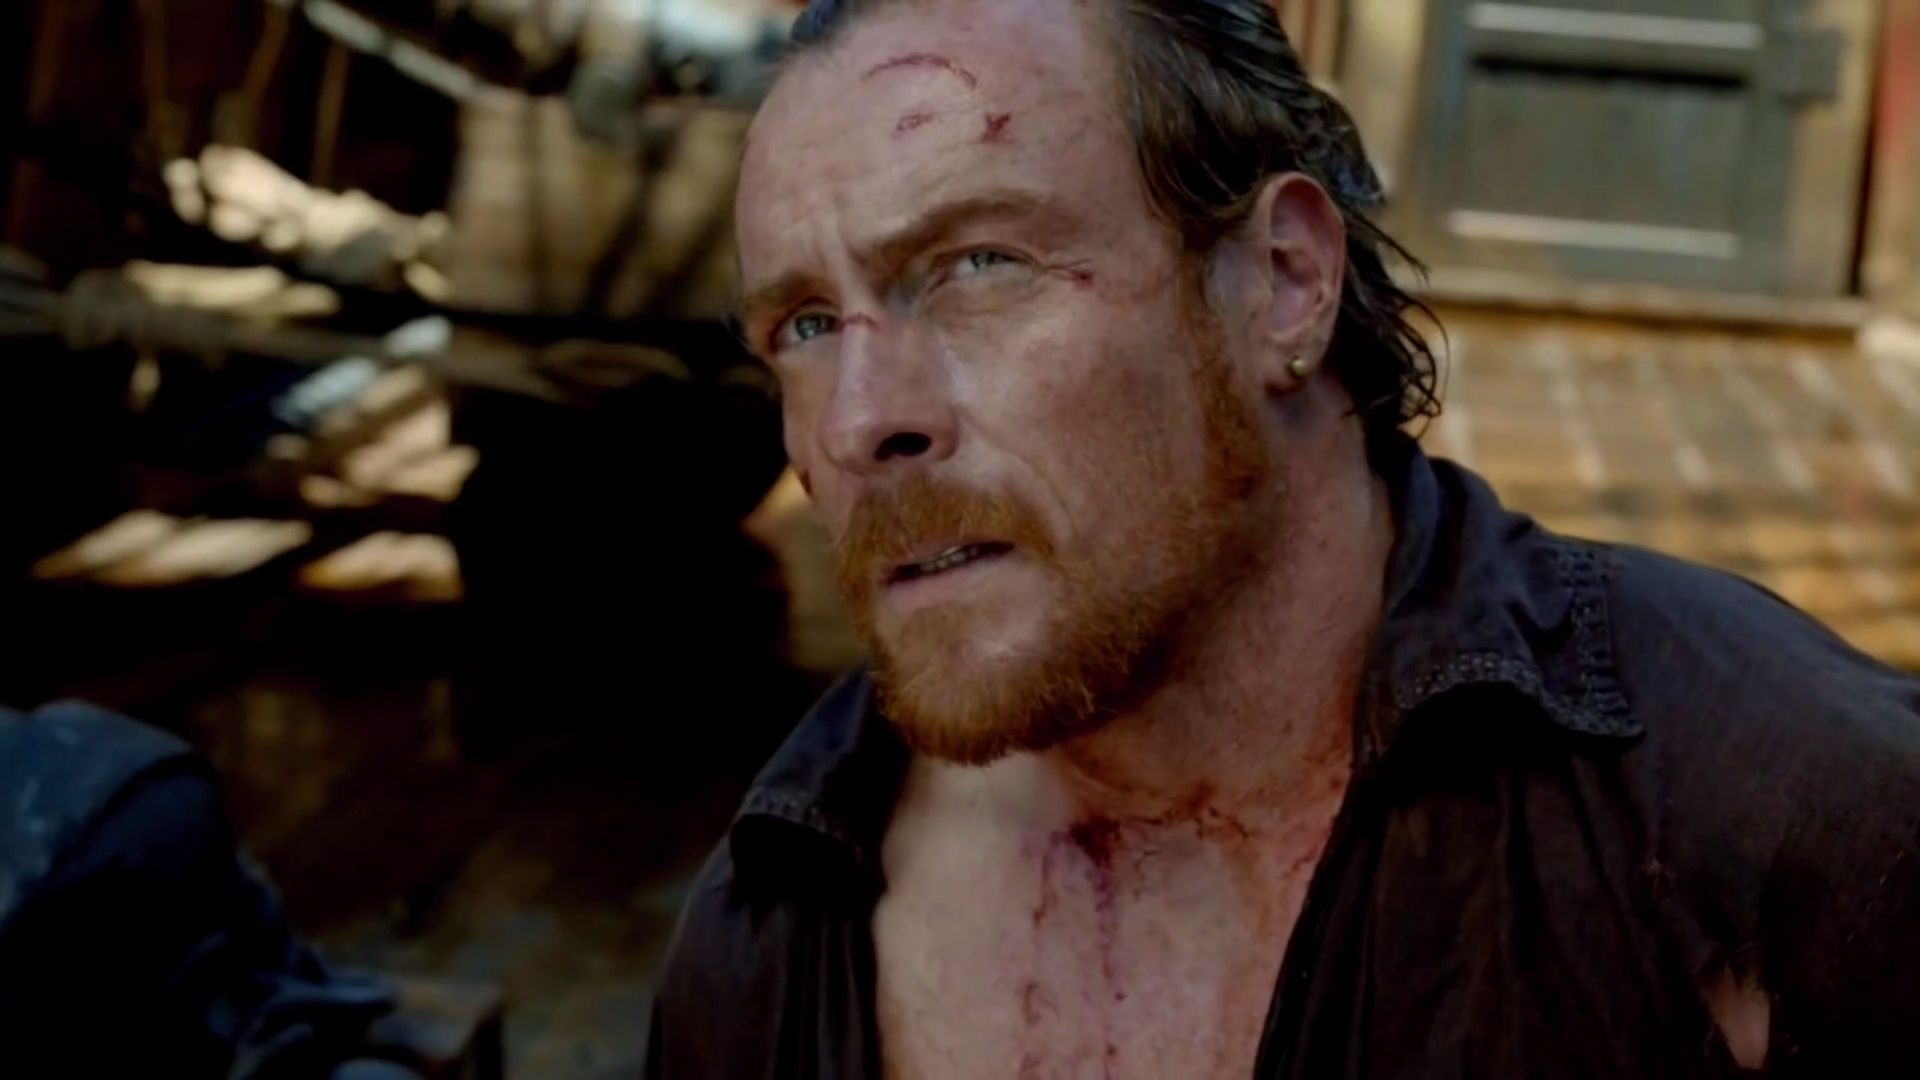 Forum on this topic: Anjana Bhowmick, toby-stephens-born-1969/